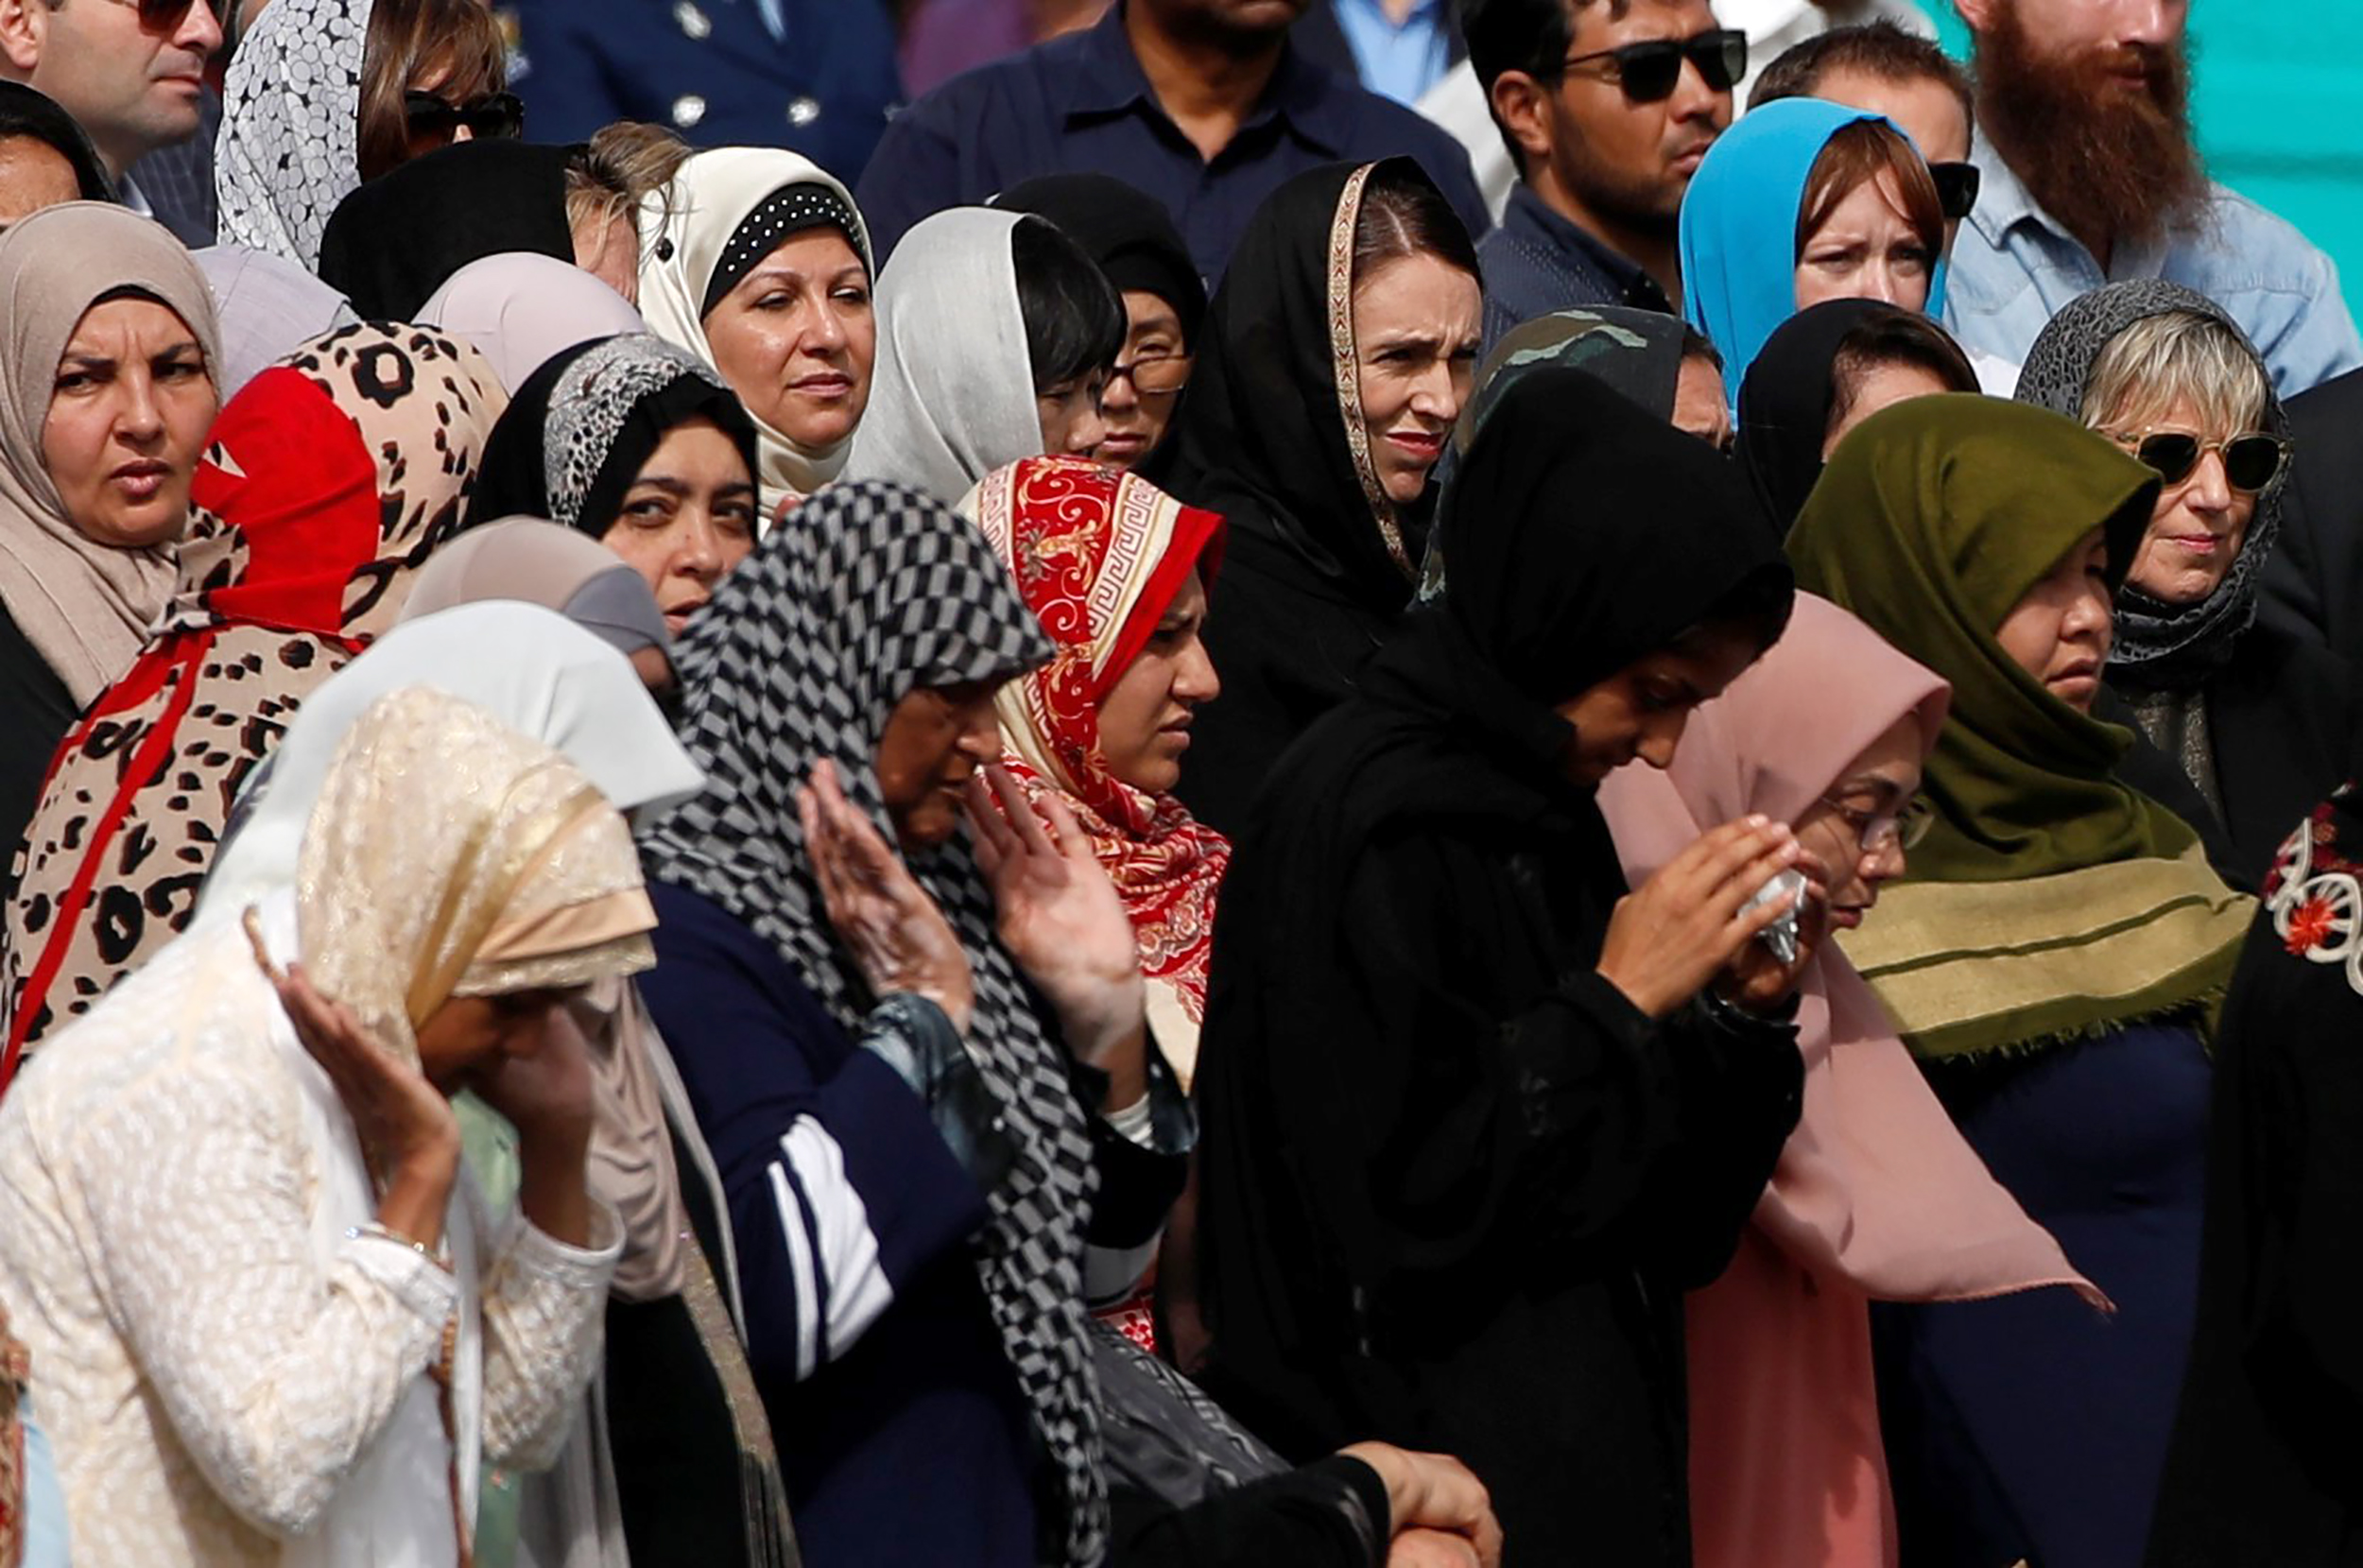 nbcnews.com - New Zealand broadcasts Islamic call to prayer to honor 50 Christchurch victims